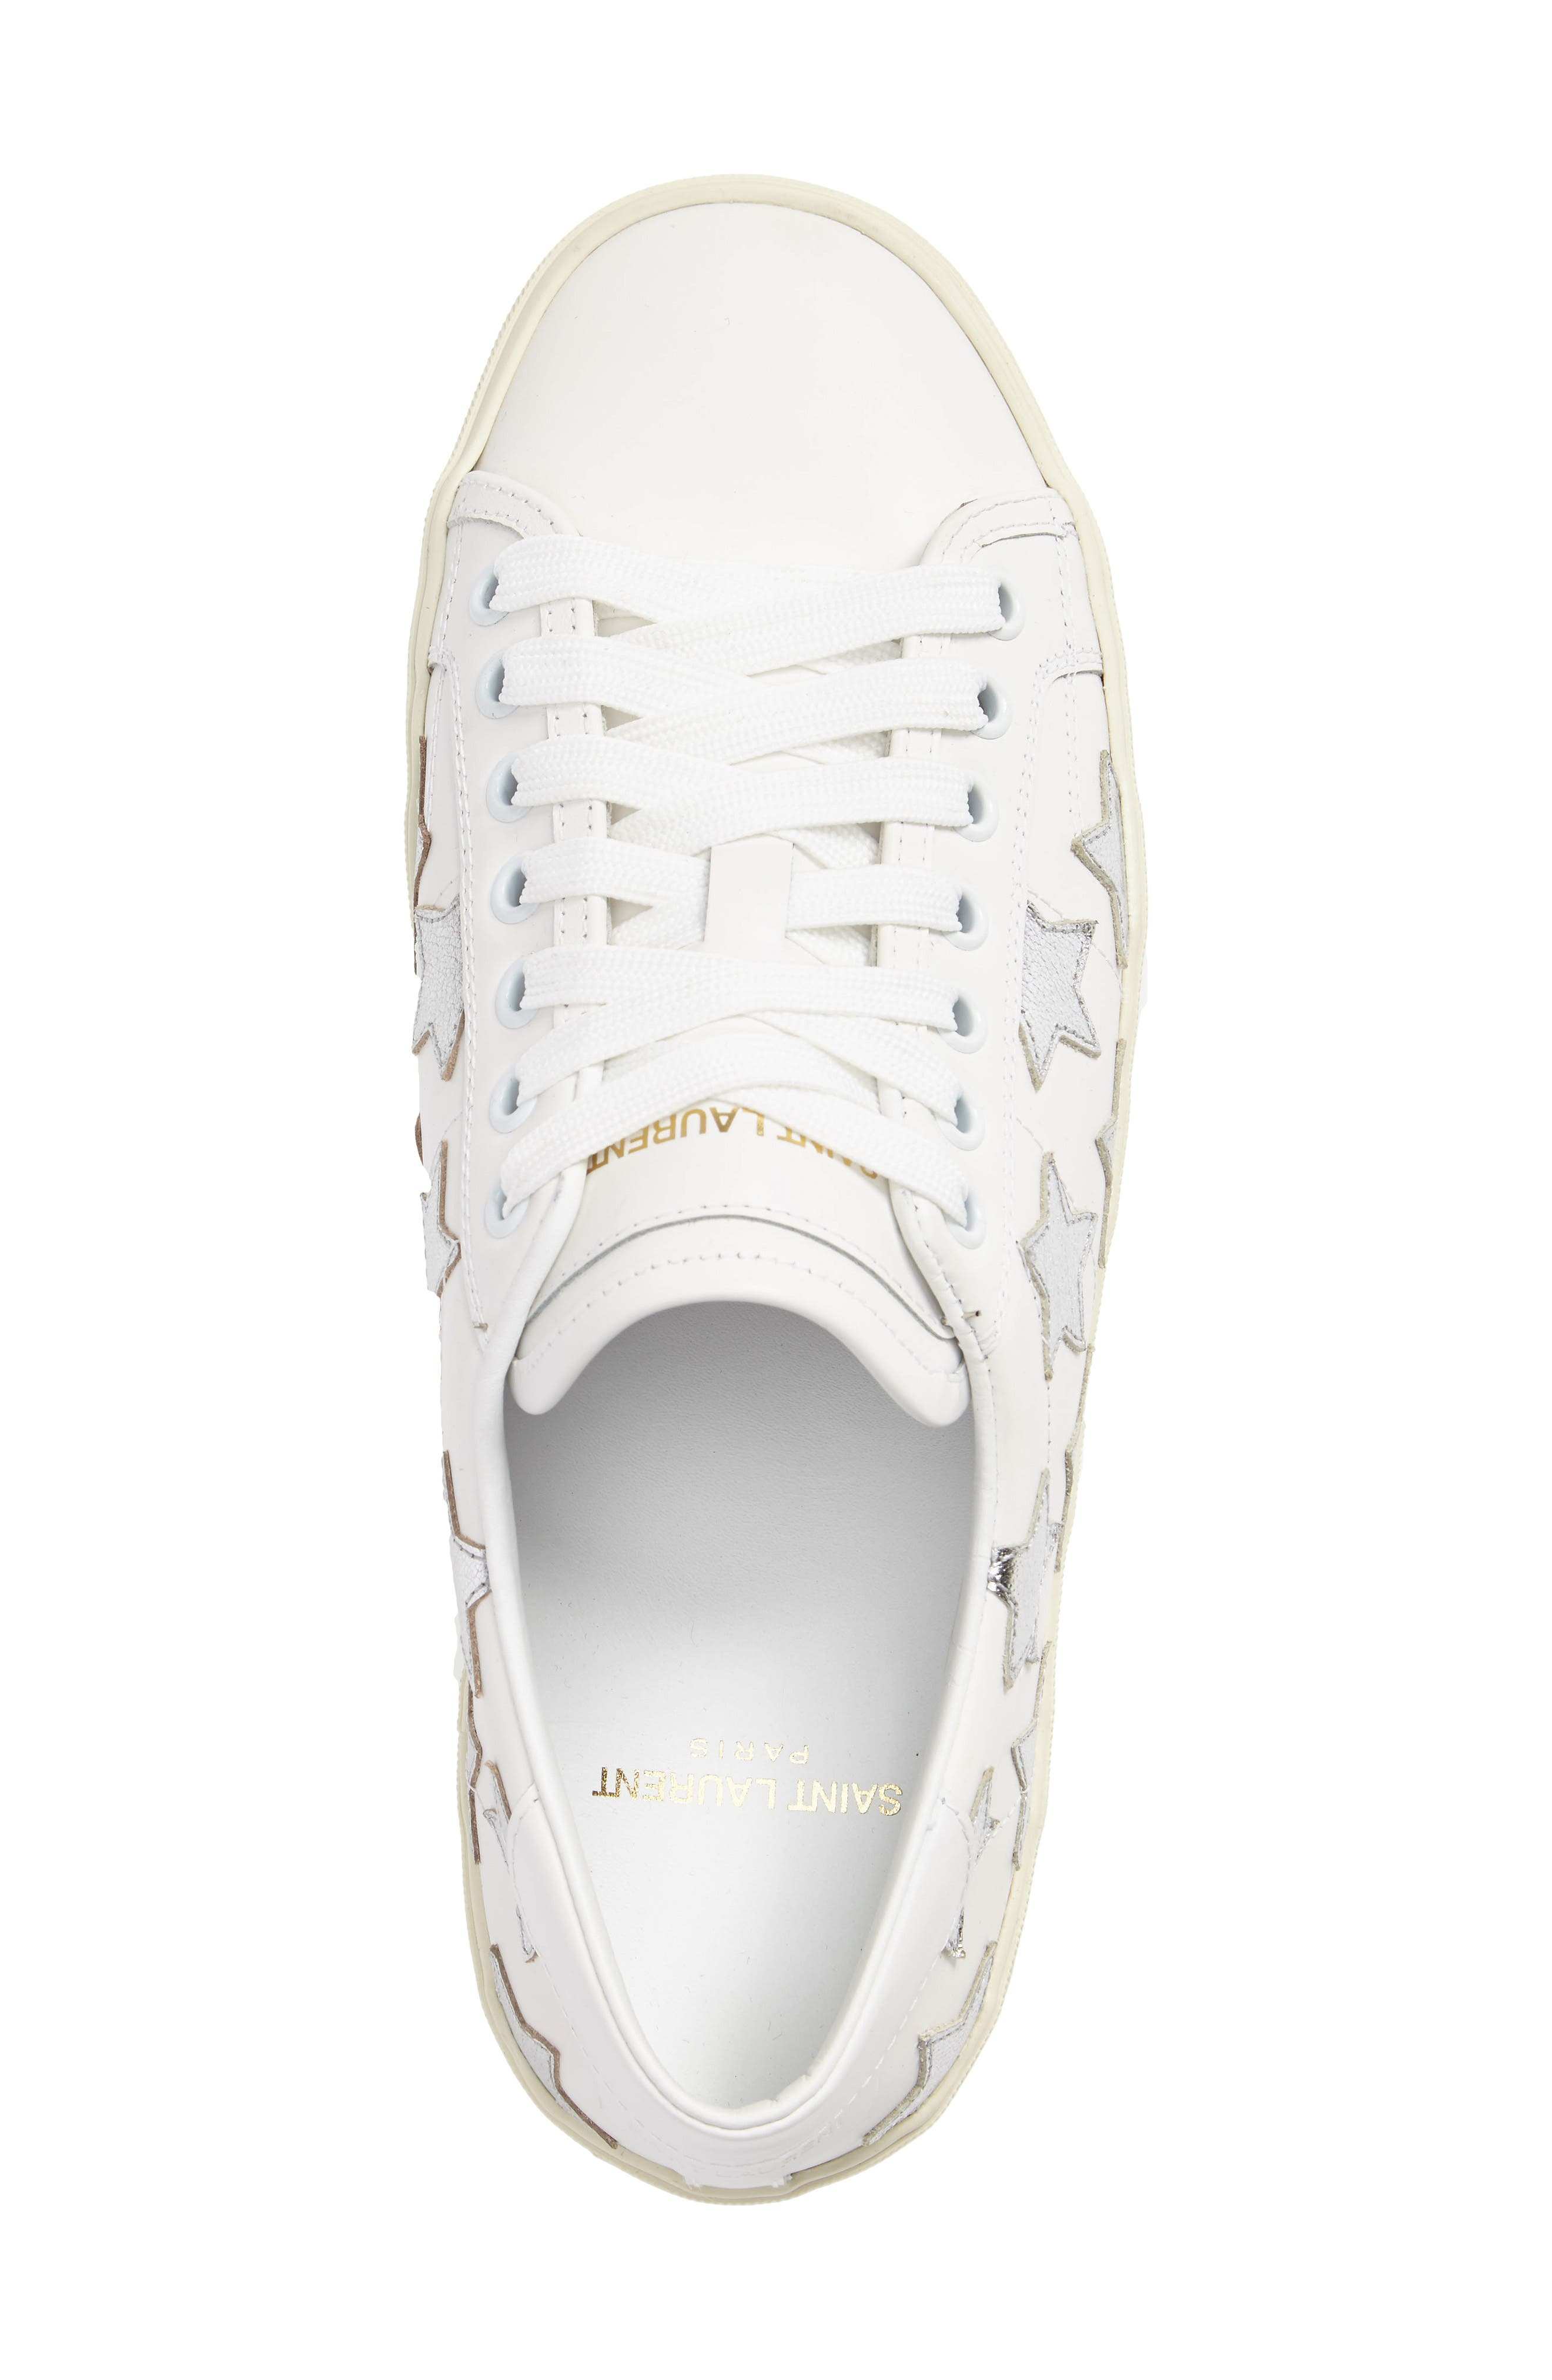 Double Court Classic Sneaker,                             Alternate thumbnail 3, color,                             Ivory